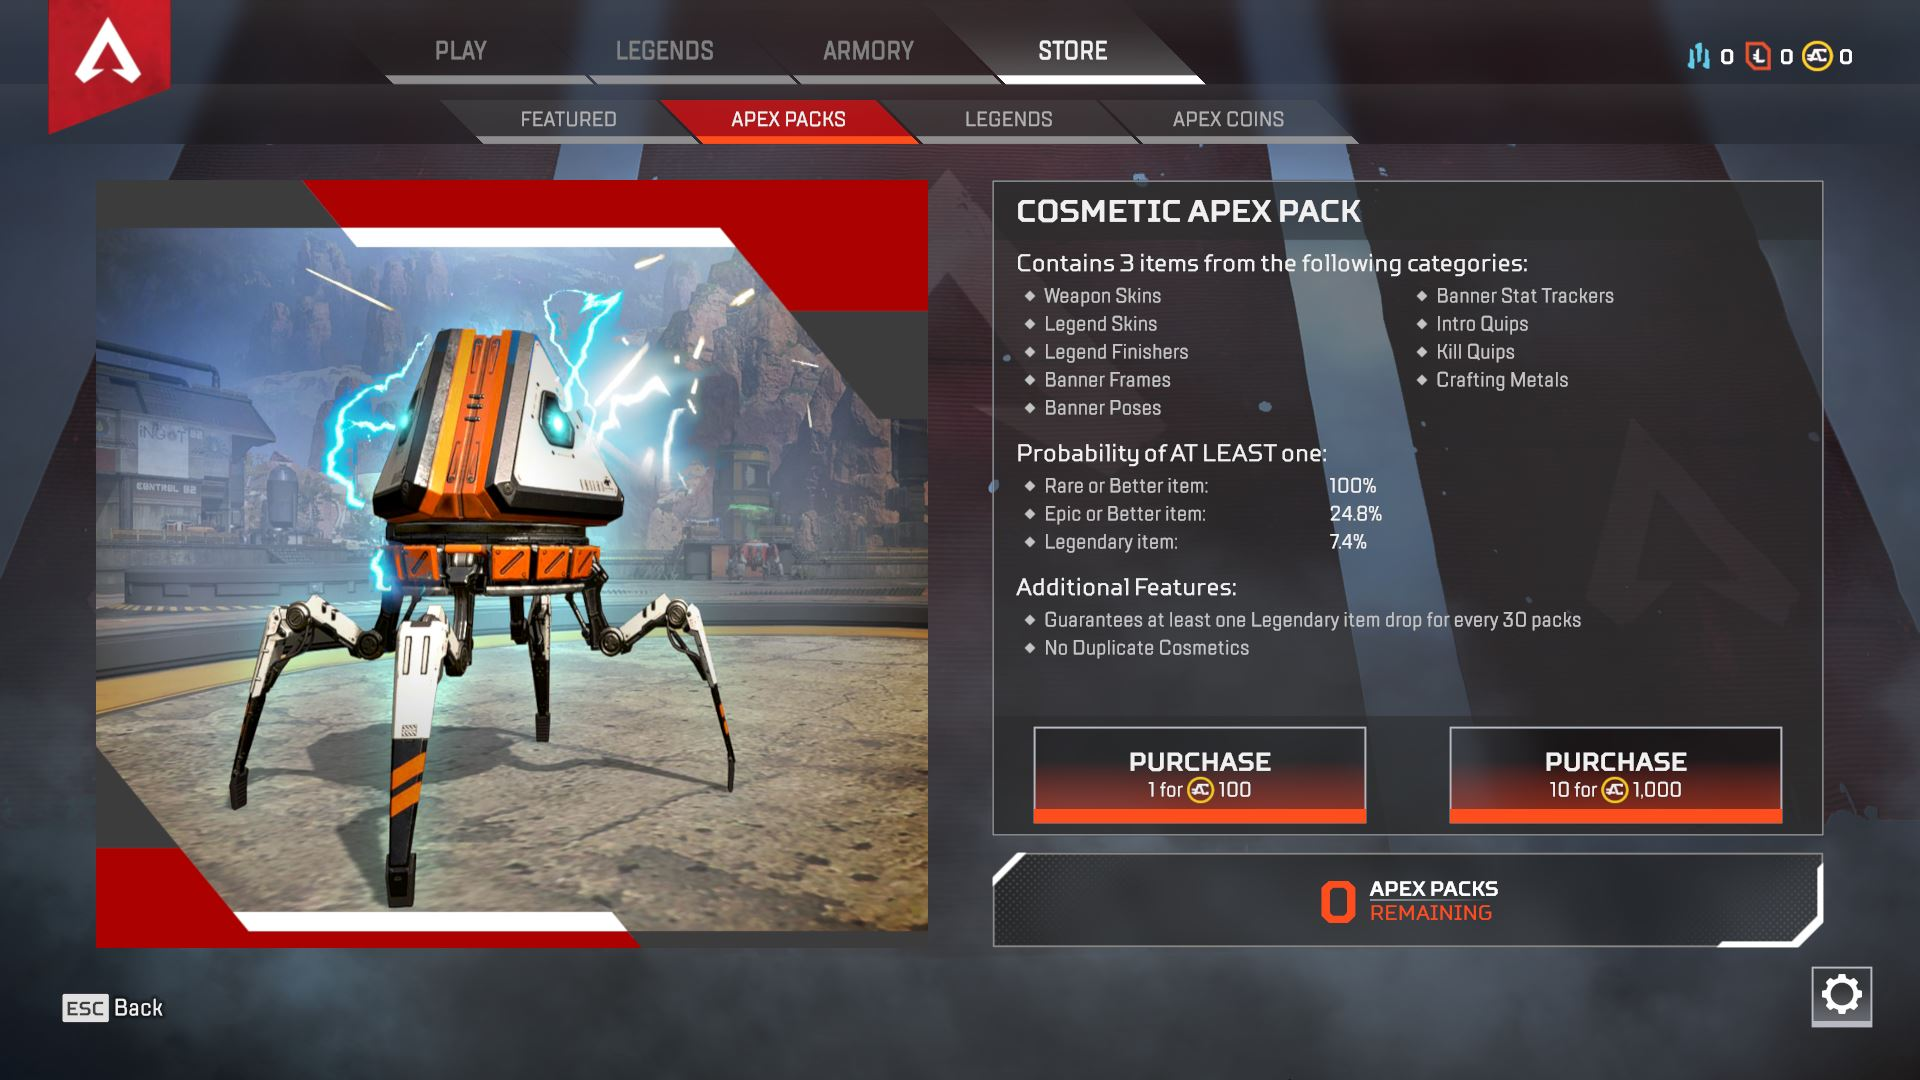 You can earn cosmetic items by opening Apex Packs in Apex Legends.